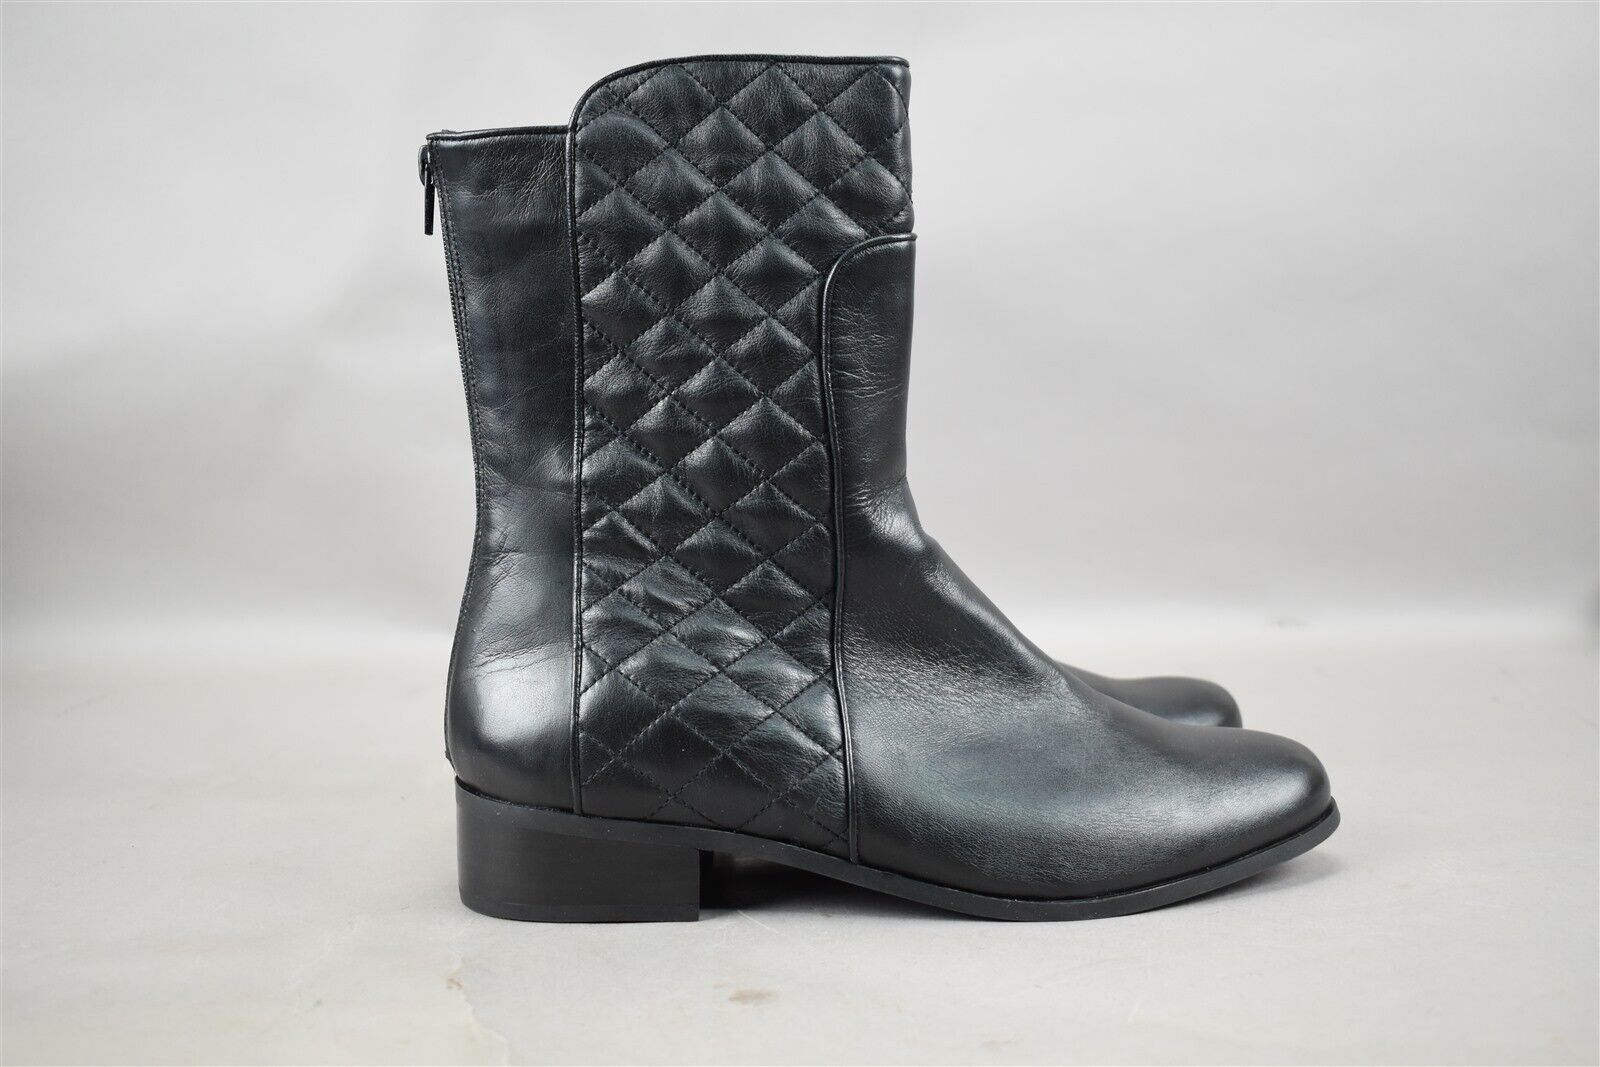 Vaneli Womens Reedy Black Nappa Leather Size 11M Mid Boot With Quilted Detail